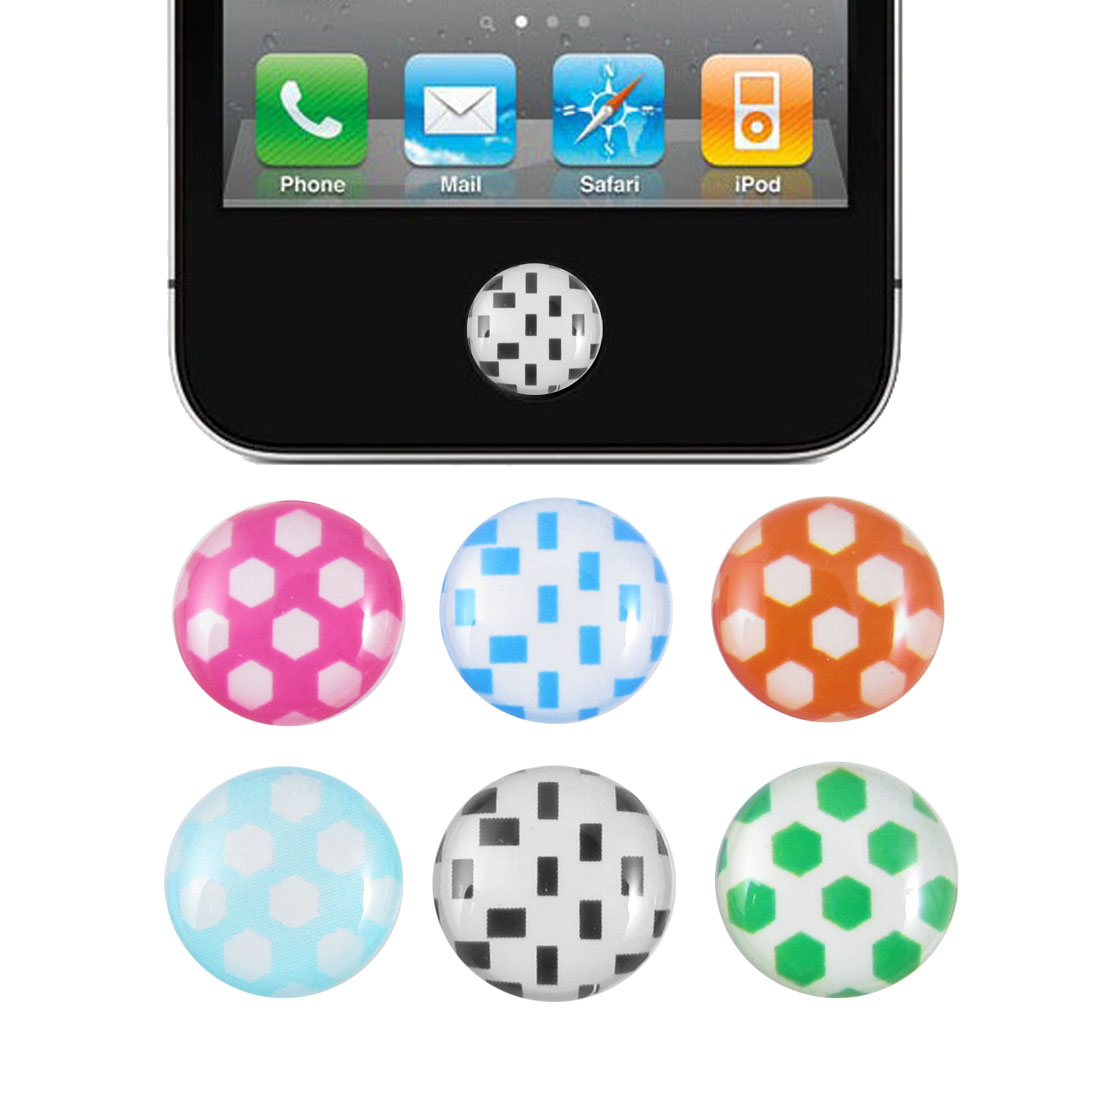 Hexagon Pattern Home Button Stickers 6 in 1 for Cell Phone